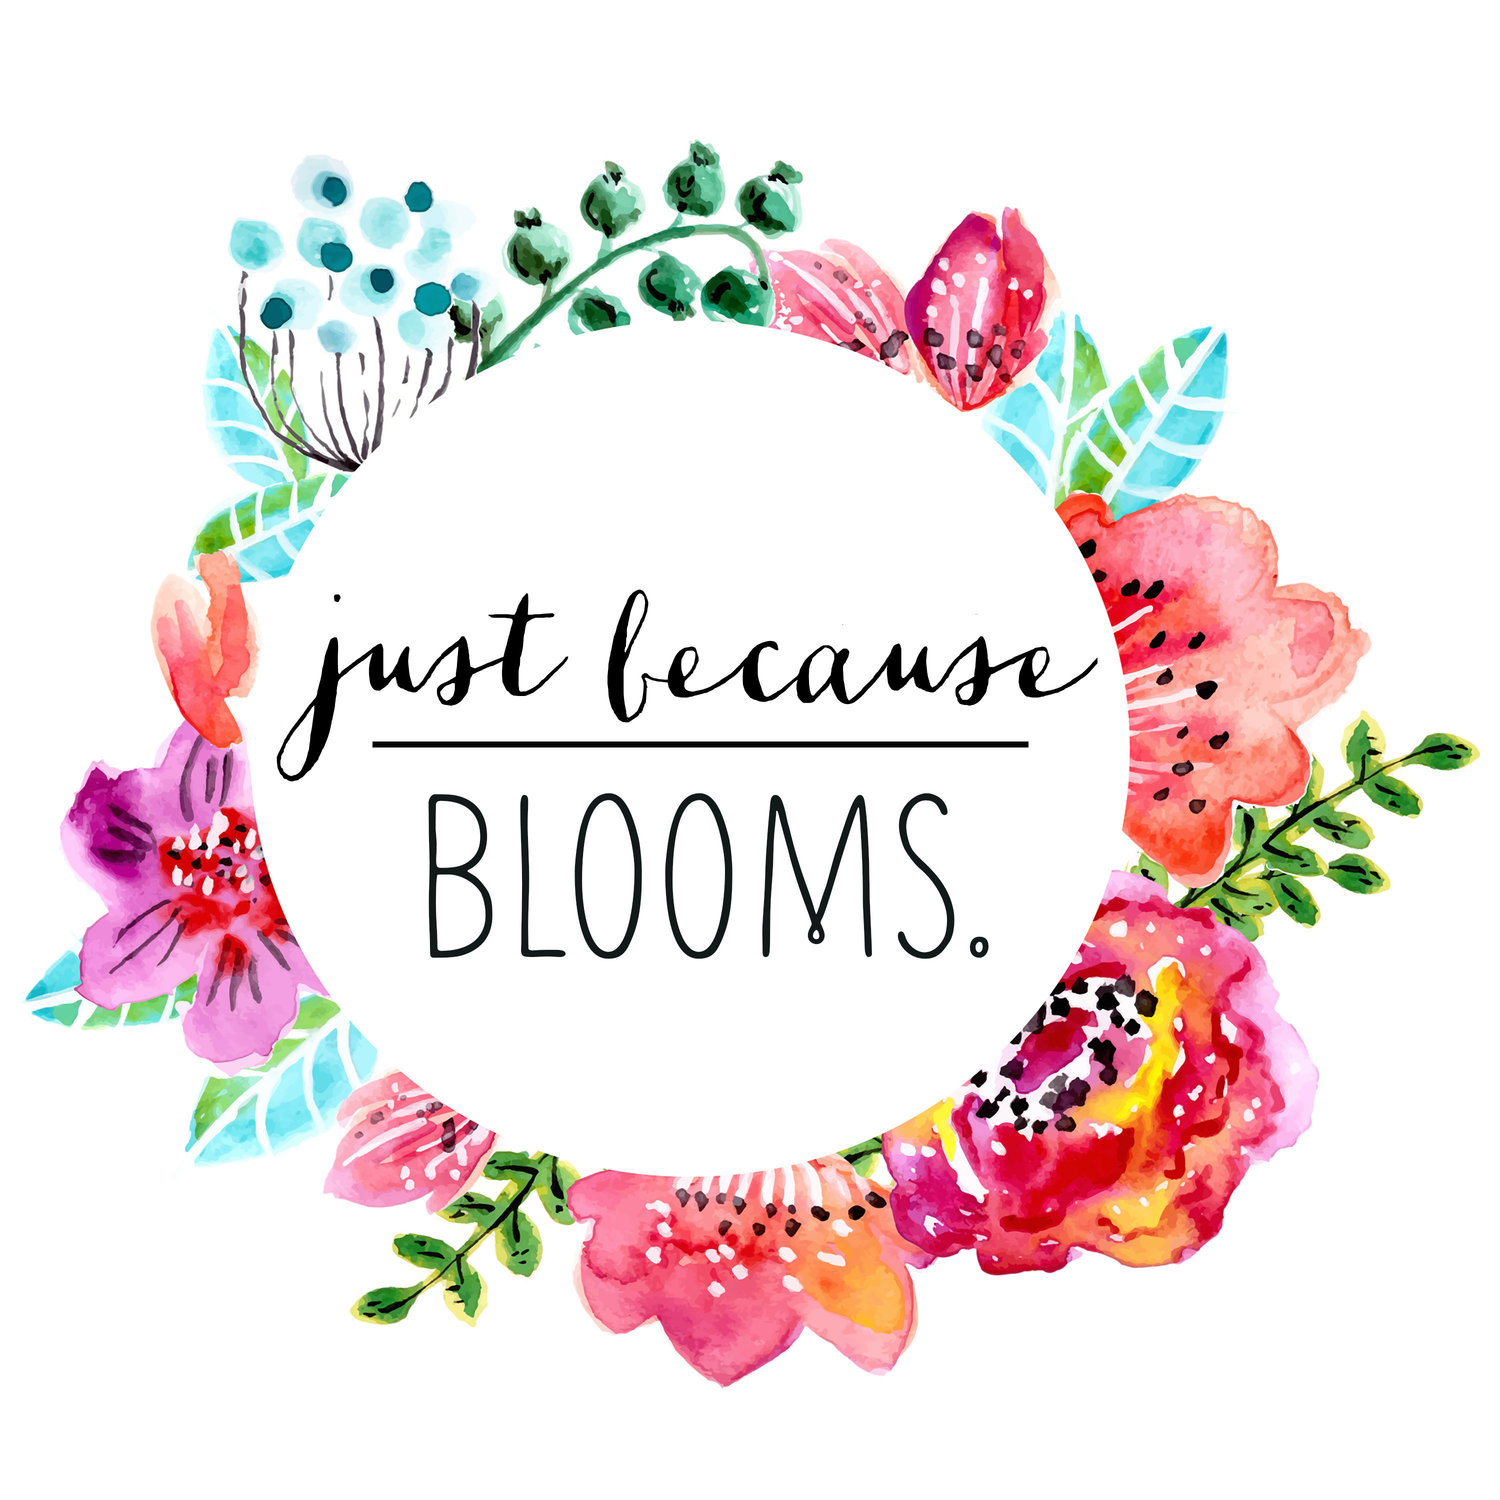 just because Blooms.